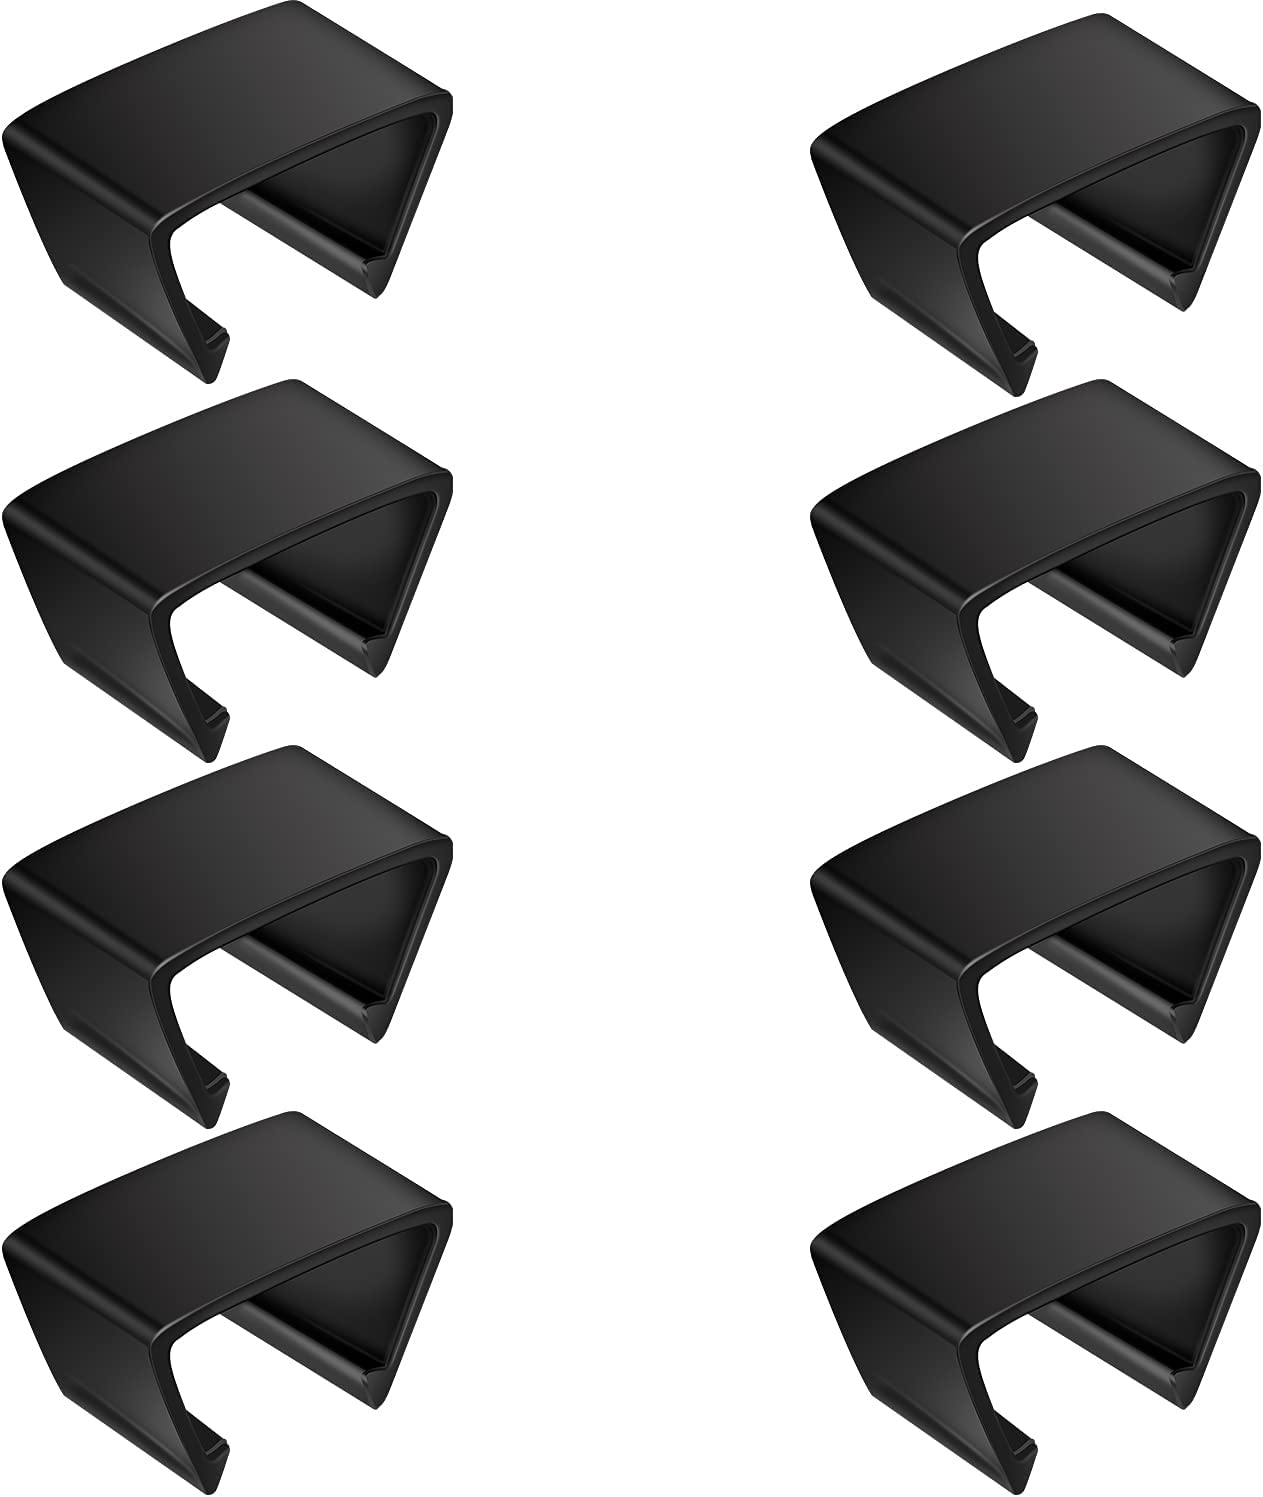 Outdoor Furniture Clips Patio Sofa Clips Rattan Furniture Clamps Wicker Chair Fasteners, Connect The Sectional or Module Outdoor Couch Patio Furniture (8 Pieces)